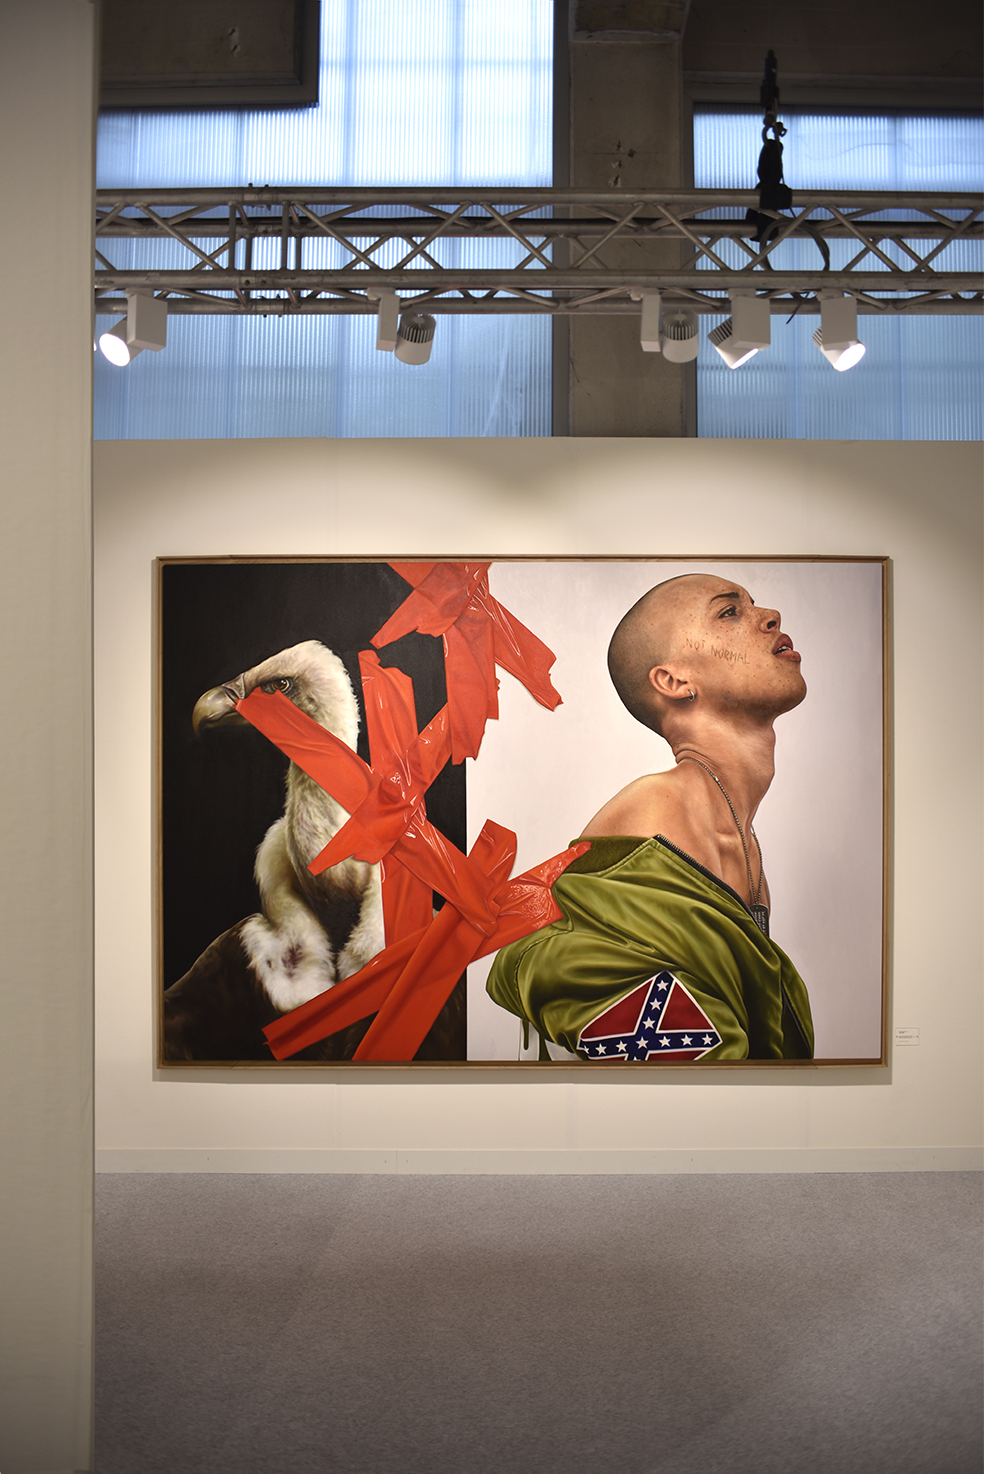 Not Normal  - Art Basel 2019 Exhibition View - THE KID - 2019 - Oil and egg tempera on canvas - 306 x 206 cm - Institutional Collection, Switzerland ©THE KID